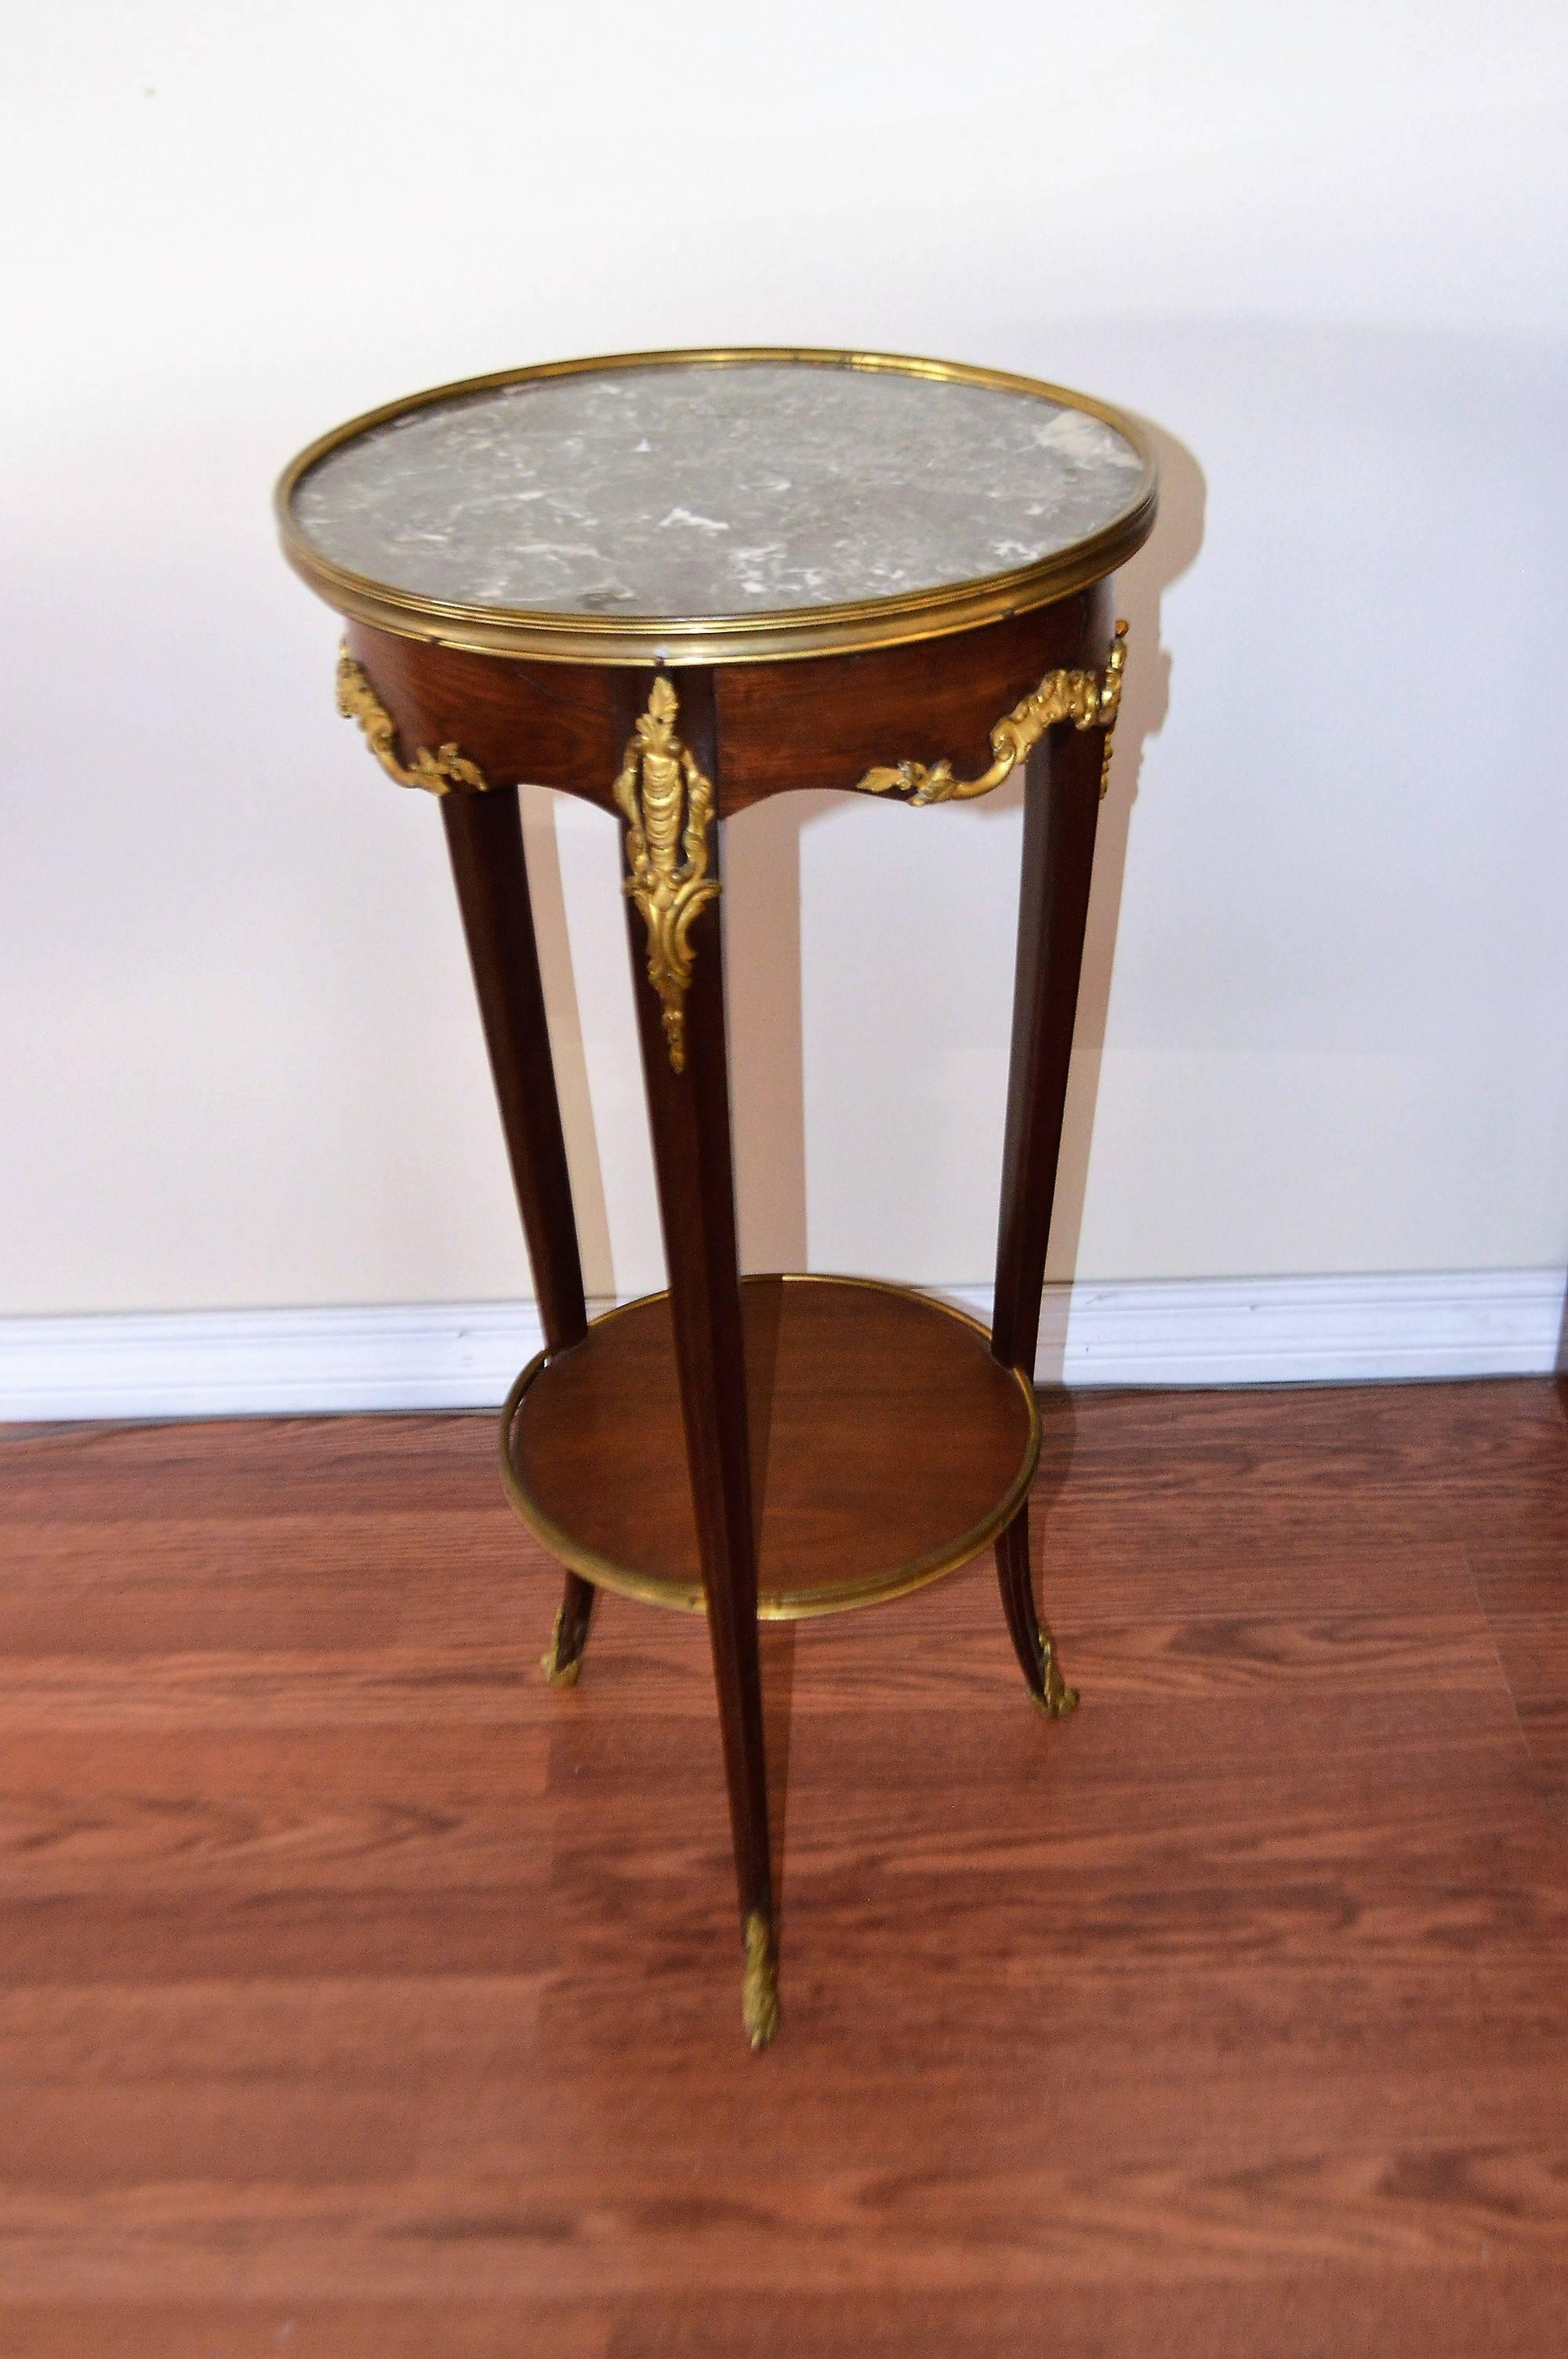 Charming, Three Leg Round Side Table With Bronze Accent Details On Each Leg  As